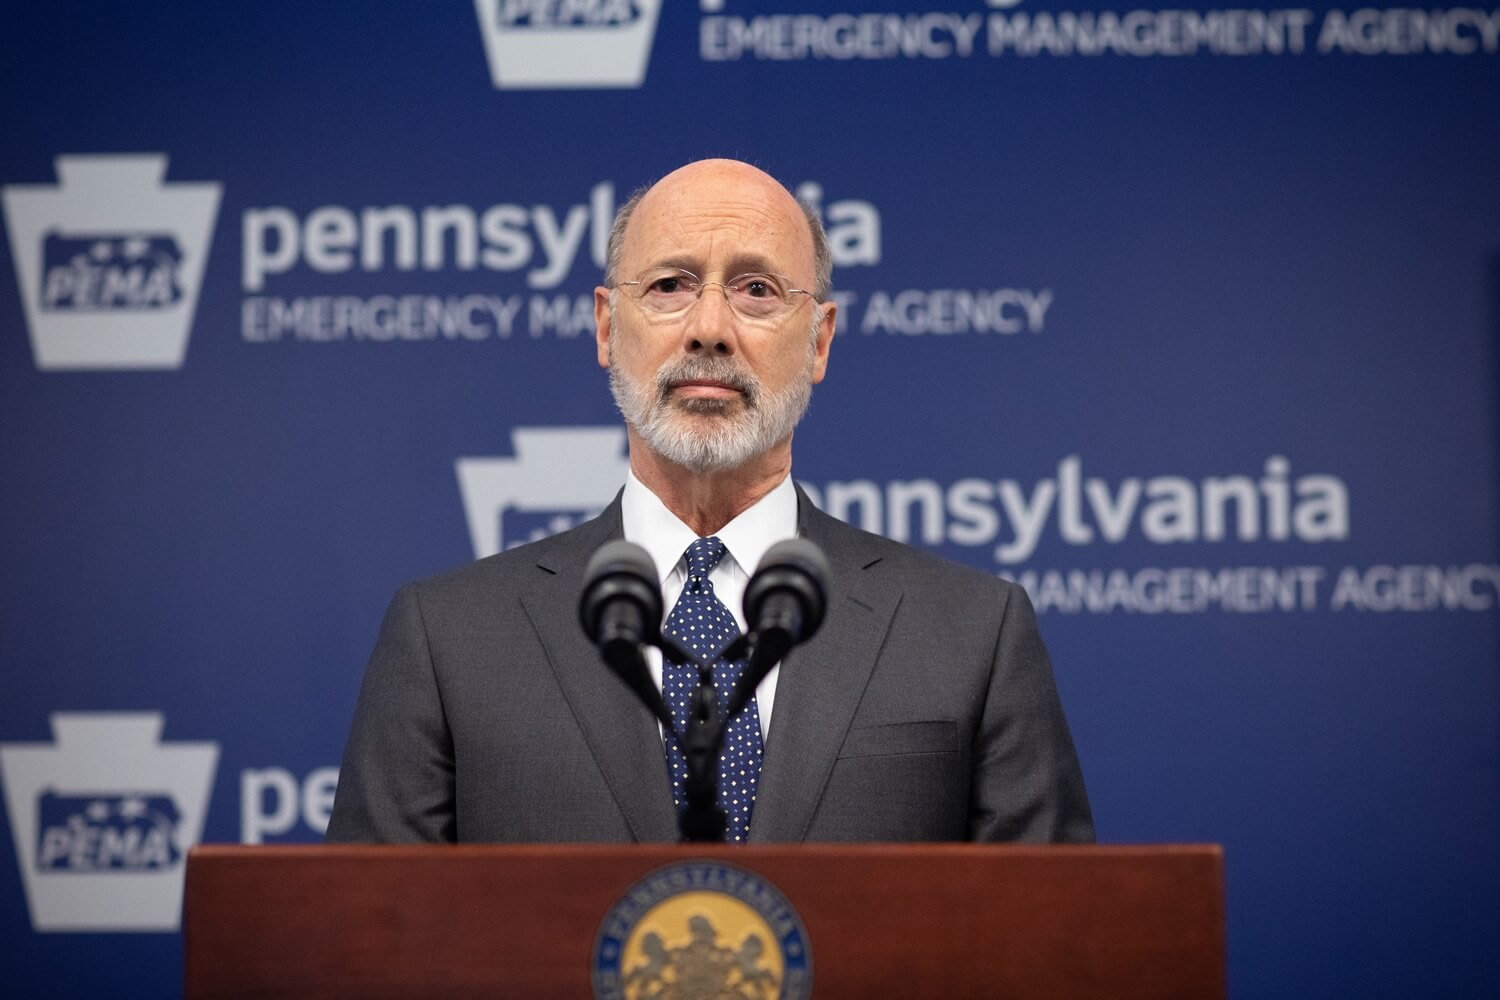 Pennsylvania Governor Eases Up a Bit With Three Actions to Boost State Activity